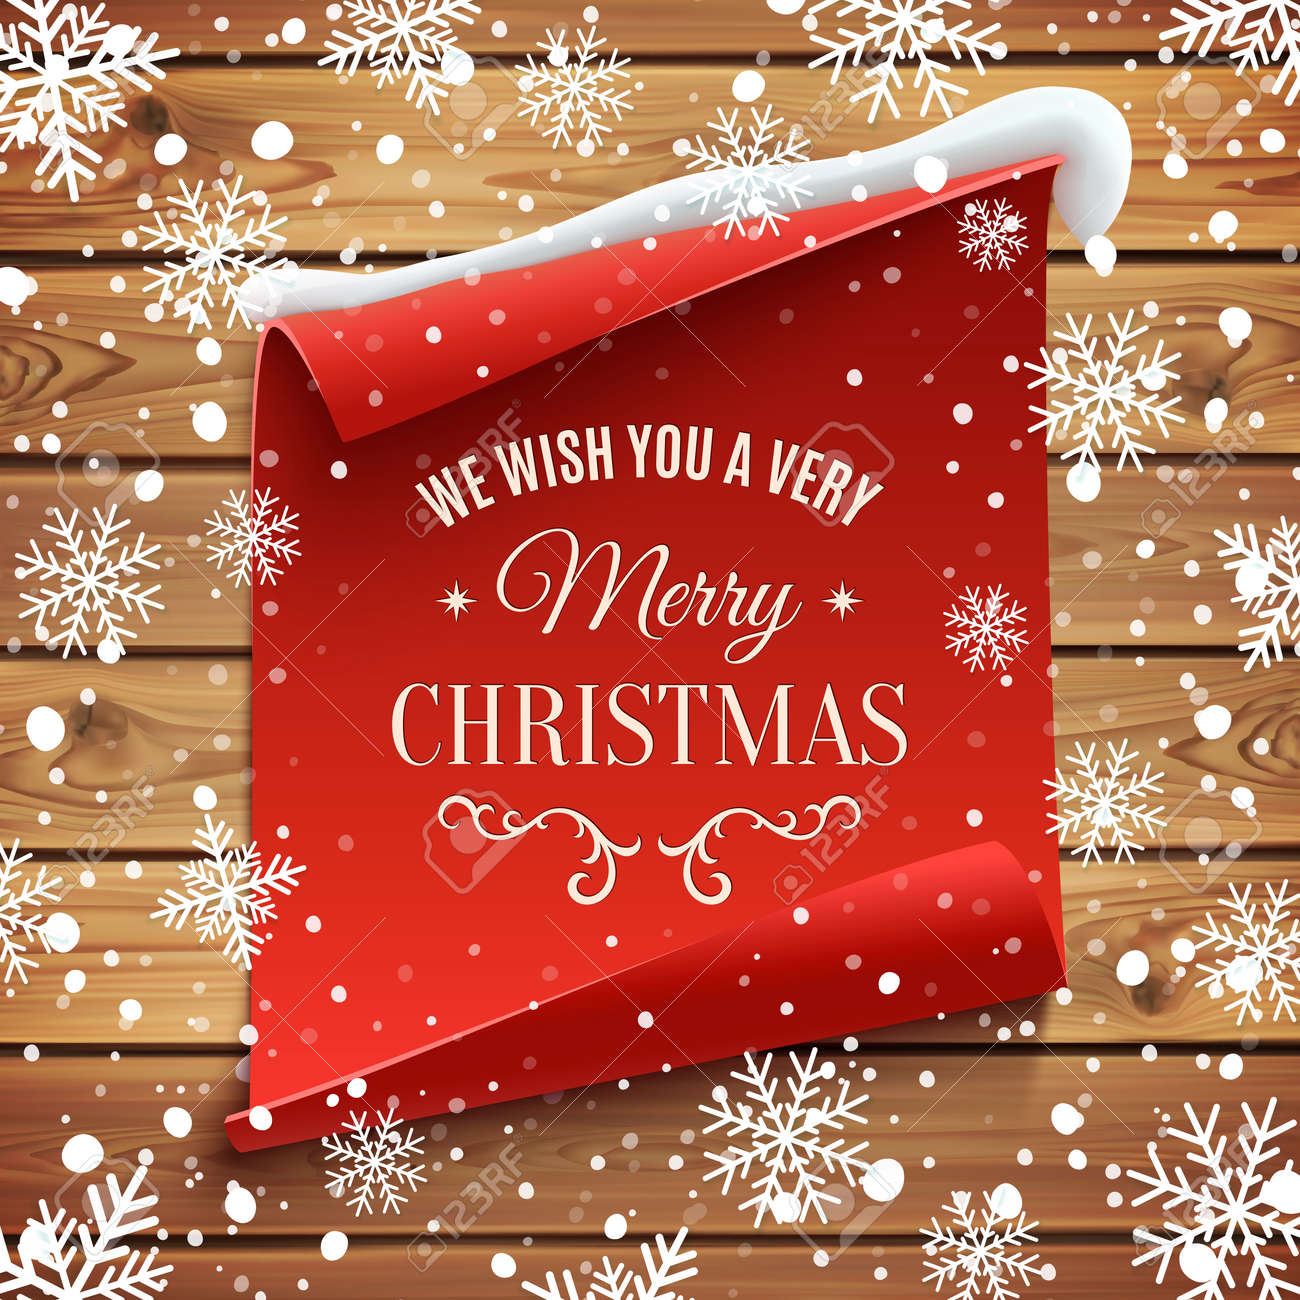 We Wish You A Very Merry Christmas Greeting Card Red Curved